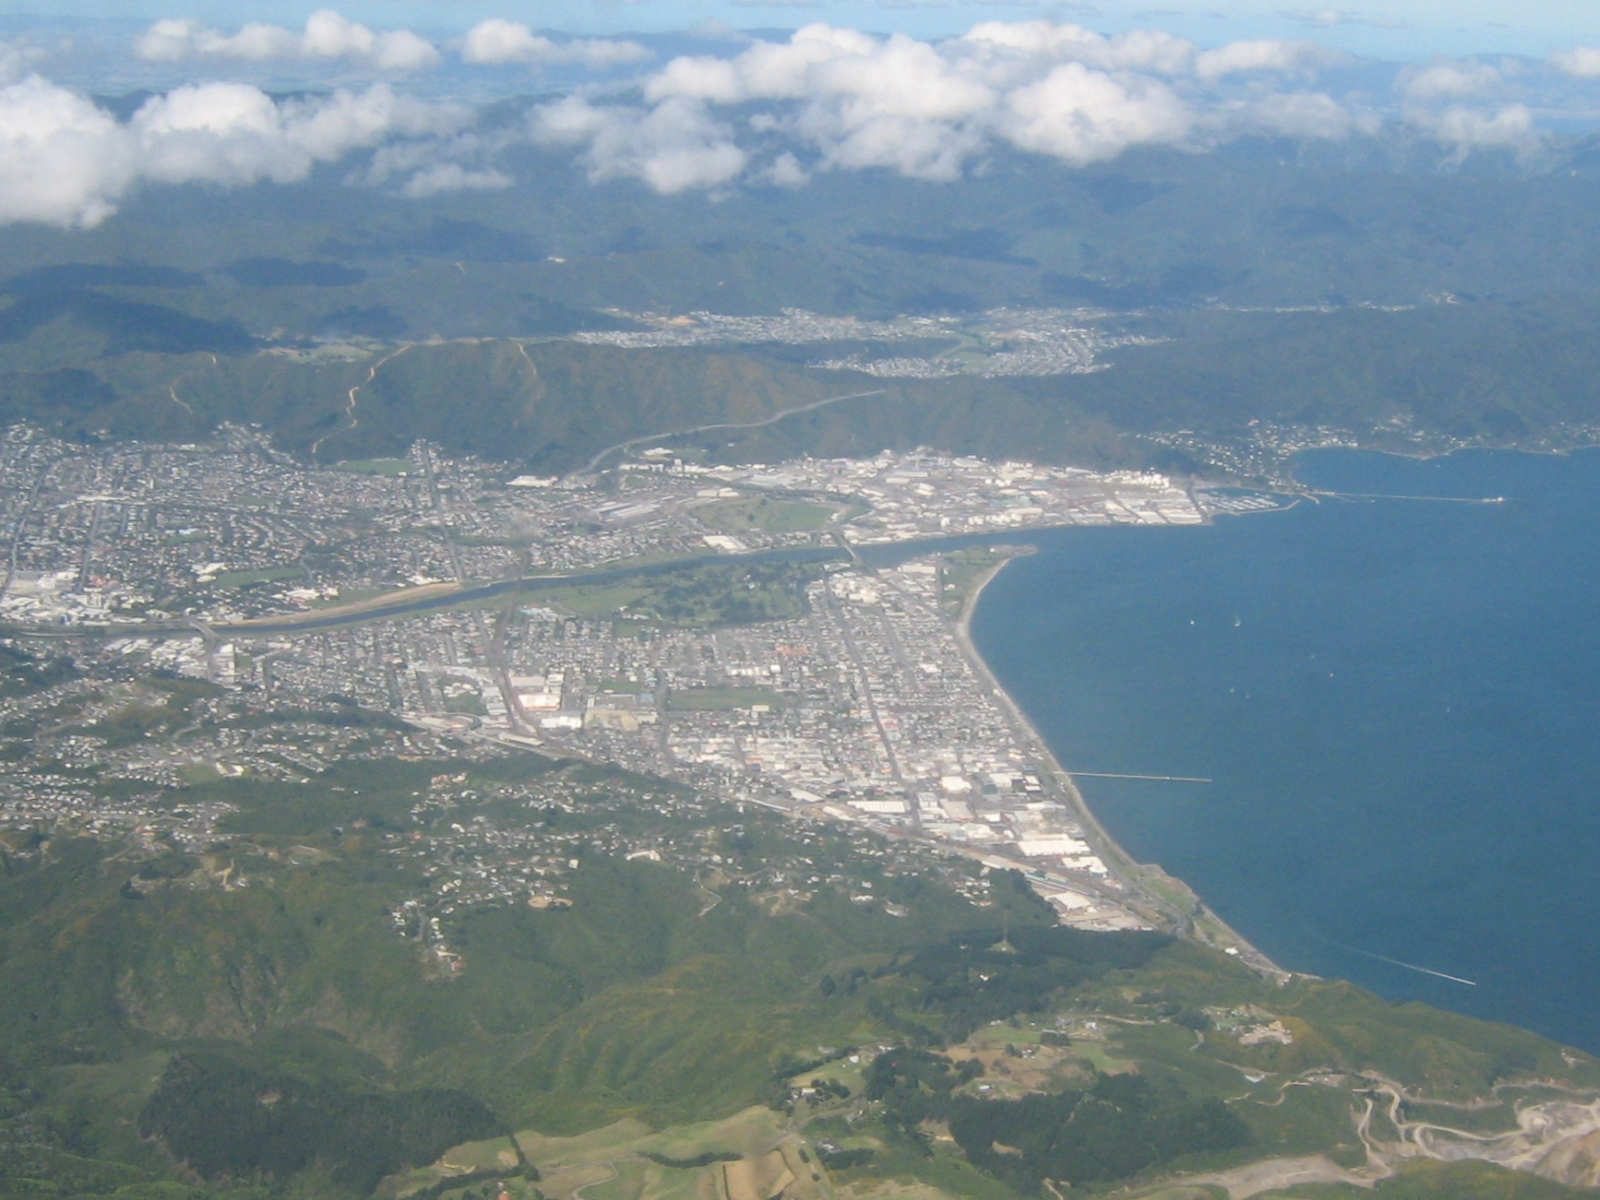 File:Lower Hutt, Un Dramatic Version.jpg - Wikipedia, the free ...